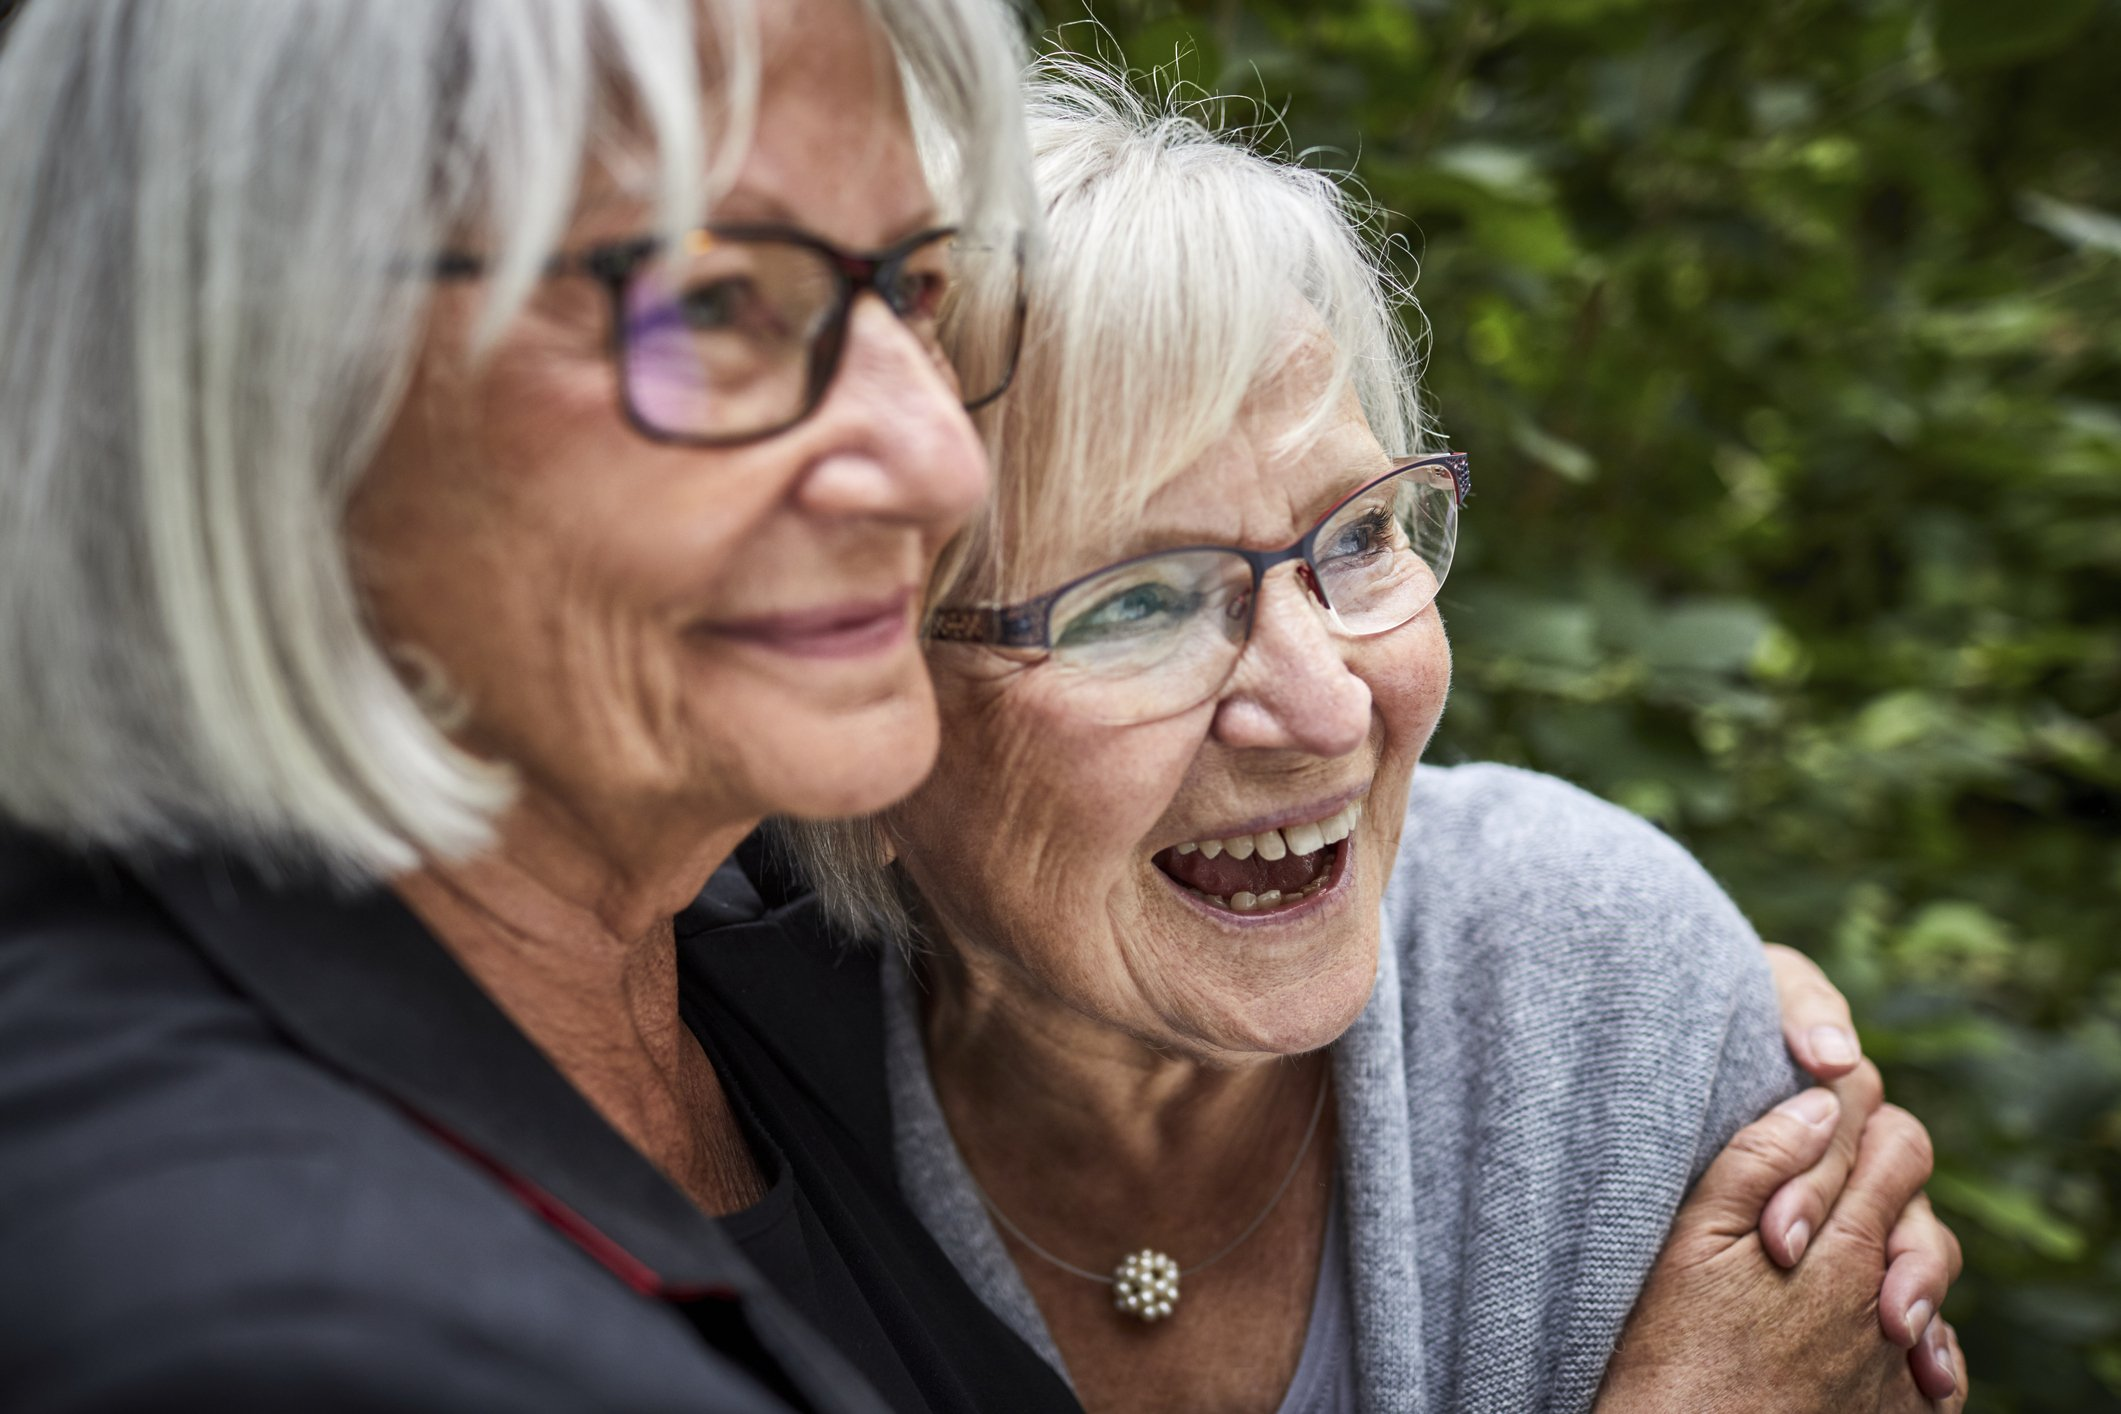 An image showing two senior women hugging each other in a garden. | Photo: Getty Images